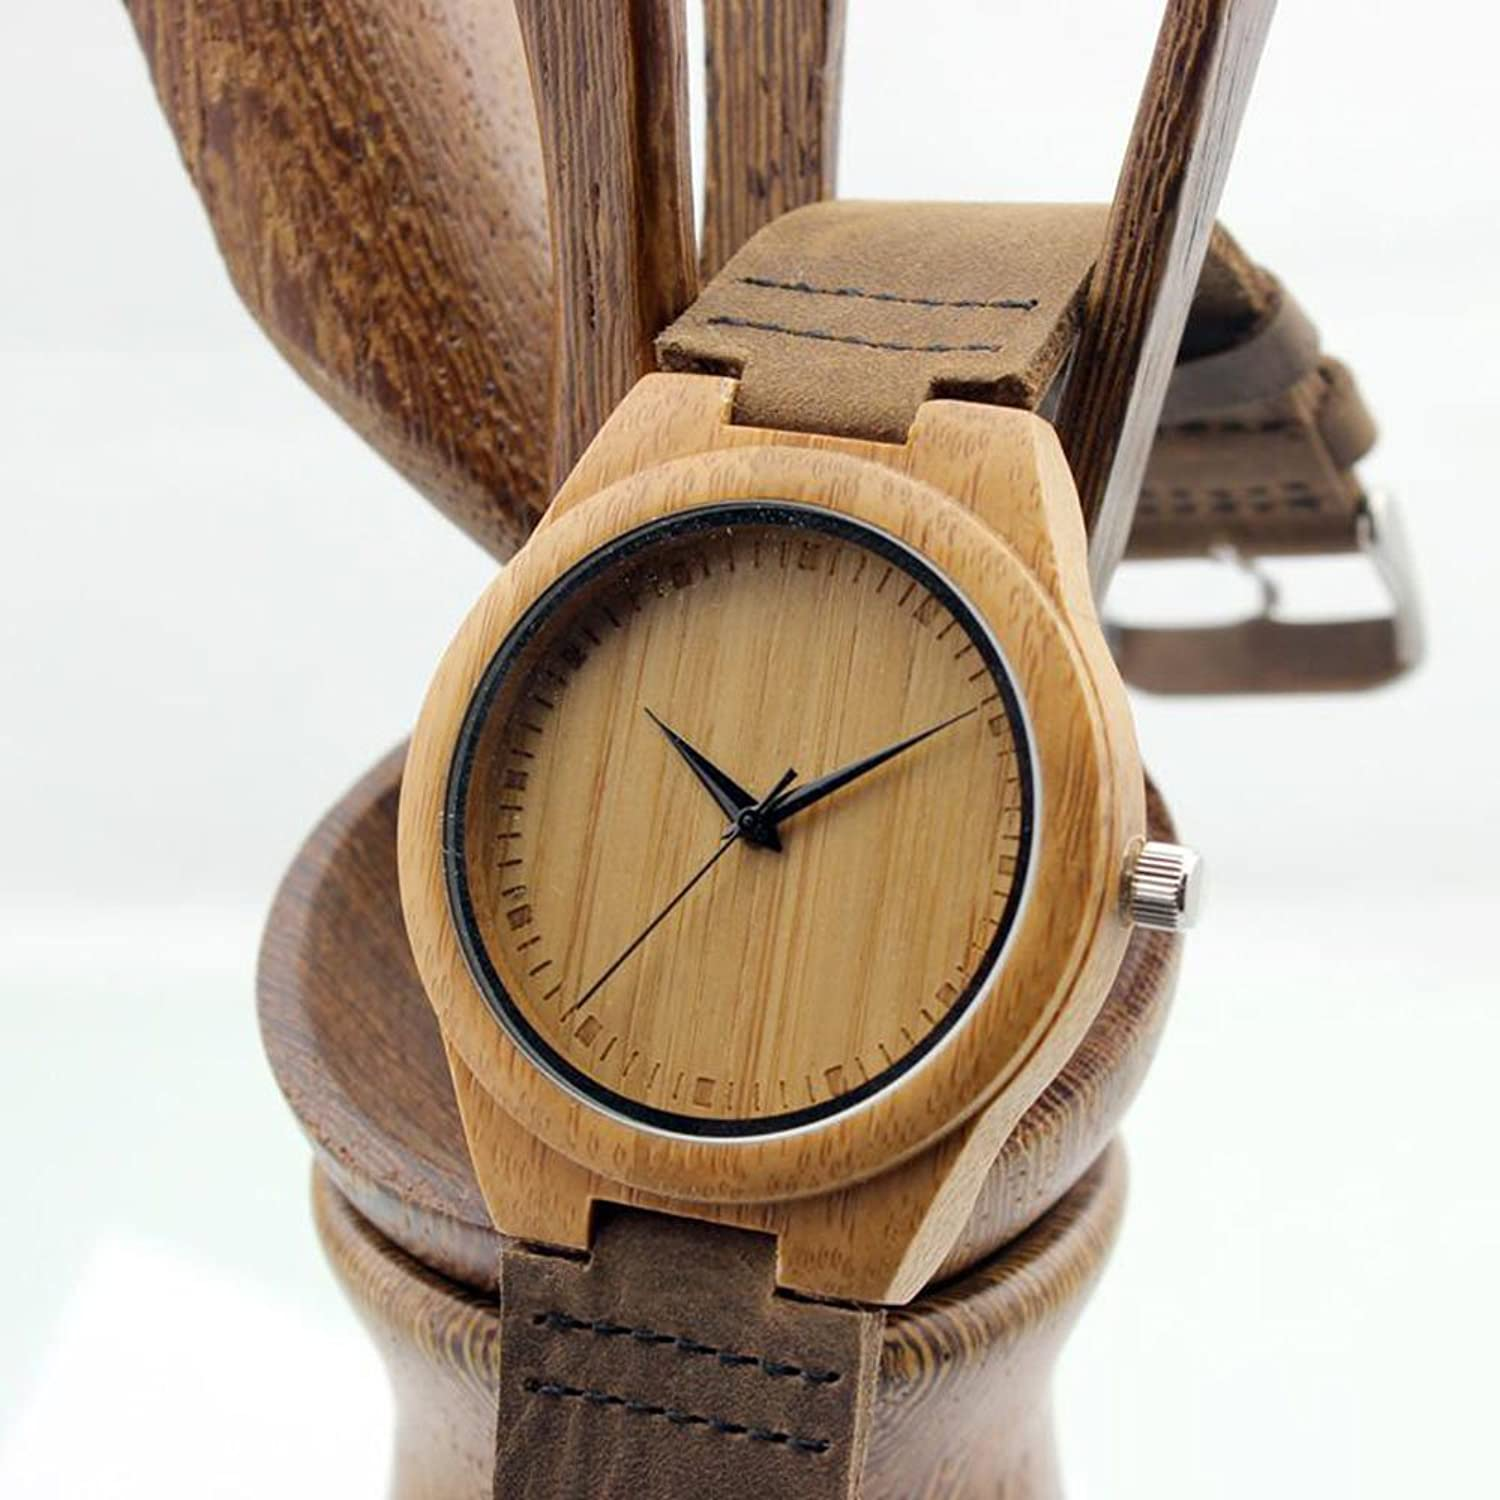 erkek bamboo eco full wood watches and miyota long energy gifts real japanese bird bobo flowers wooden life from movement saving friendly printing as design paint no chemicals quiet quartz time handmade ultra